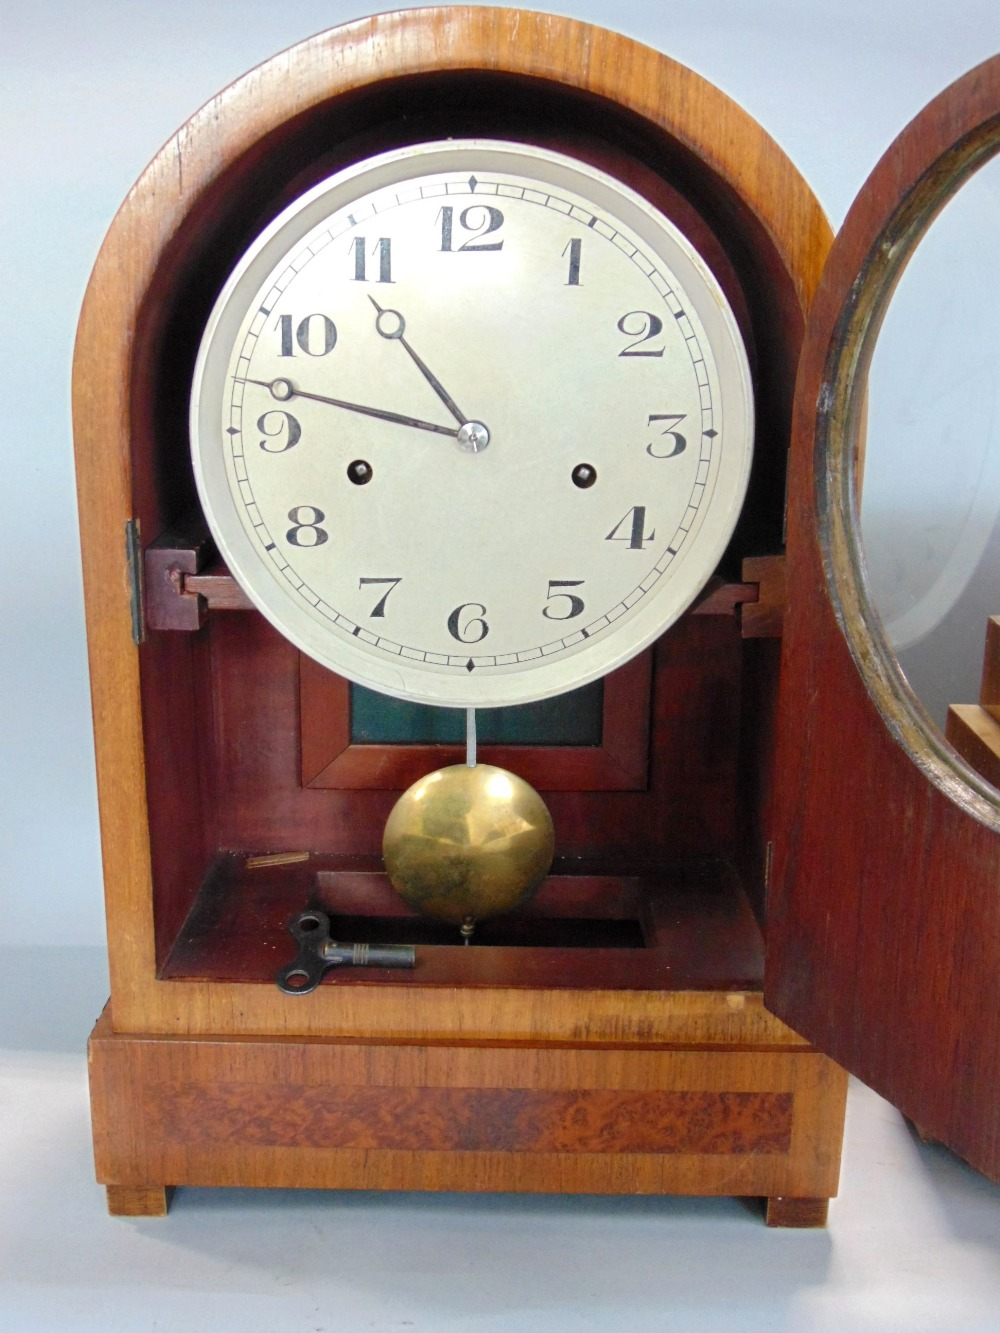 Art Deco walnut cased twin train mantels clock, with enamel chapter ring, arabic numerals, - Image 2 of 3